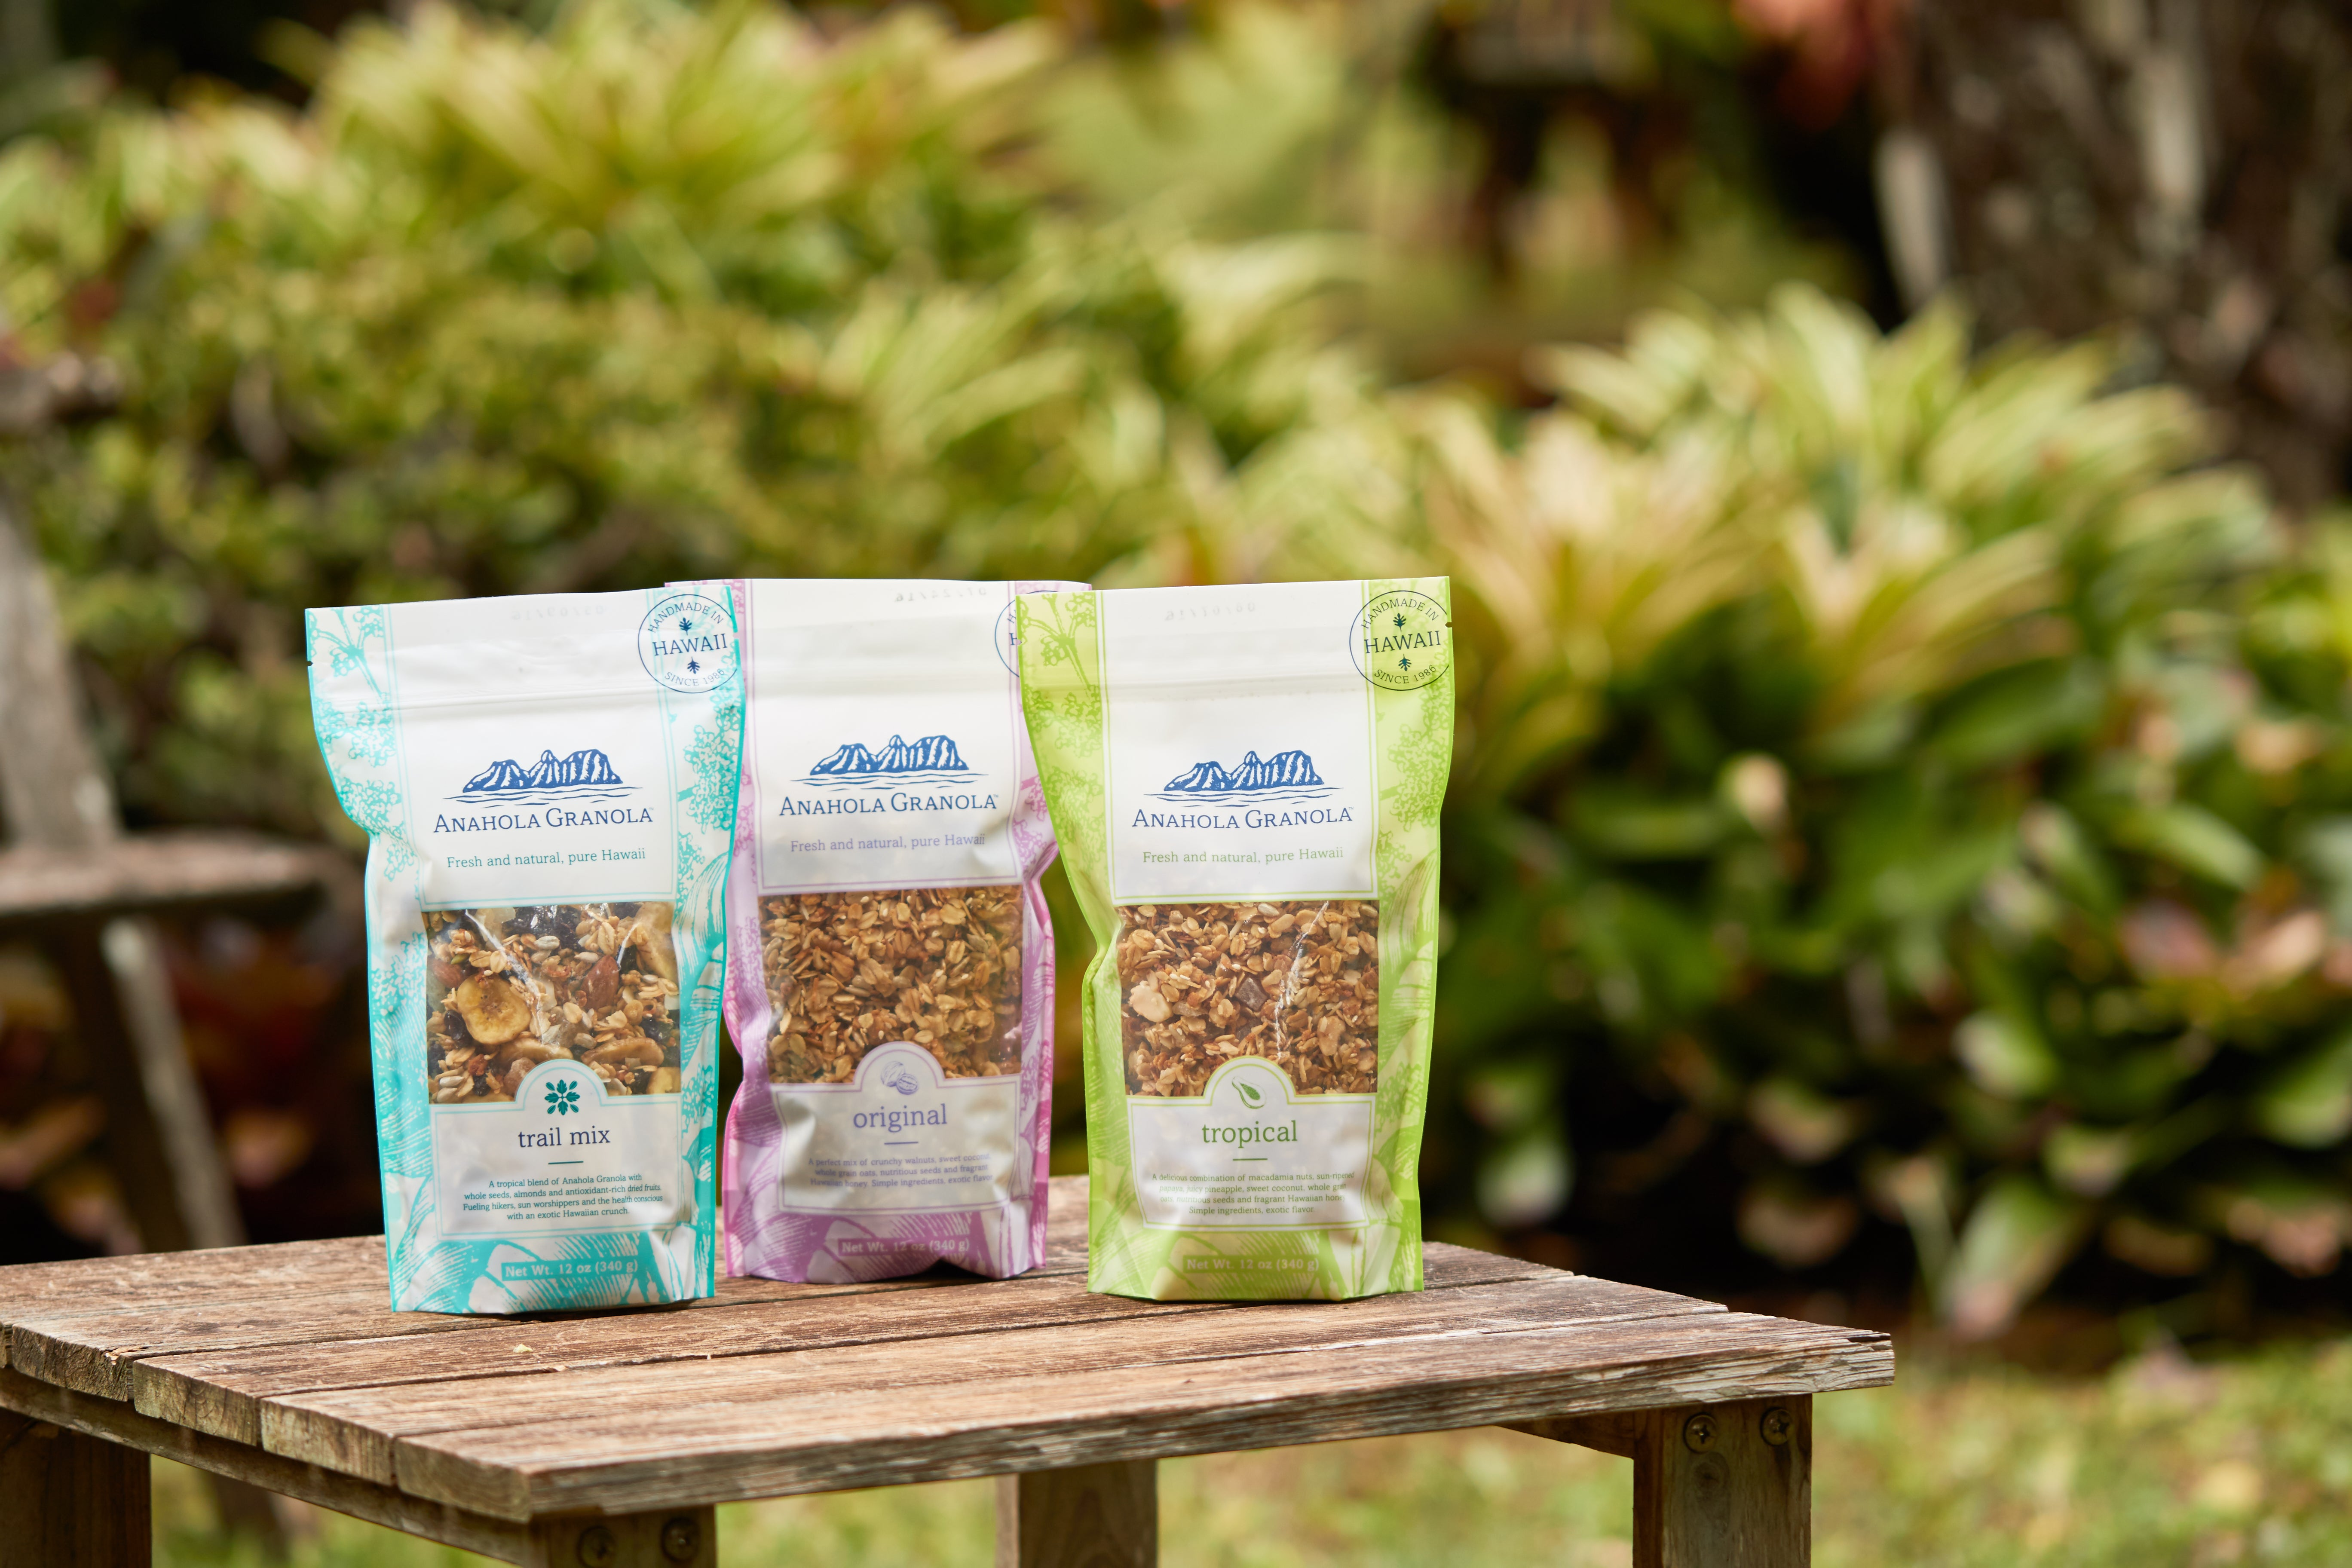 Where can I find Anahola Granola?